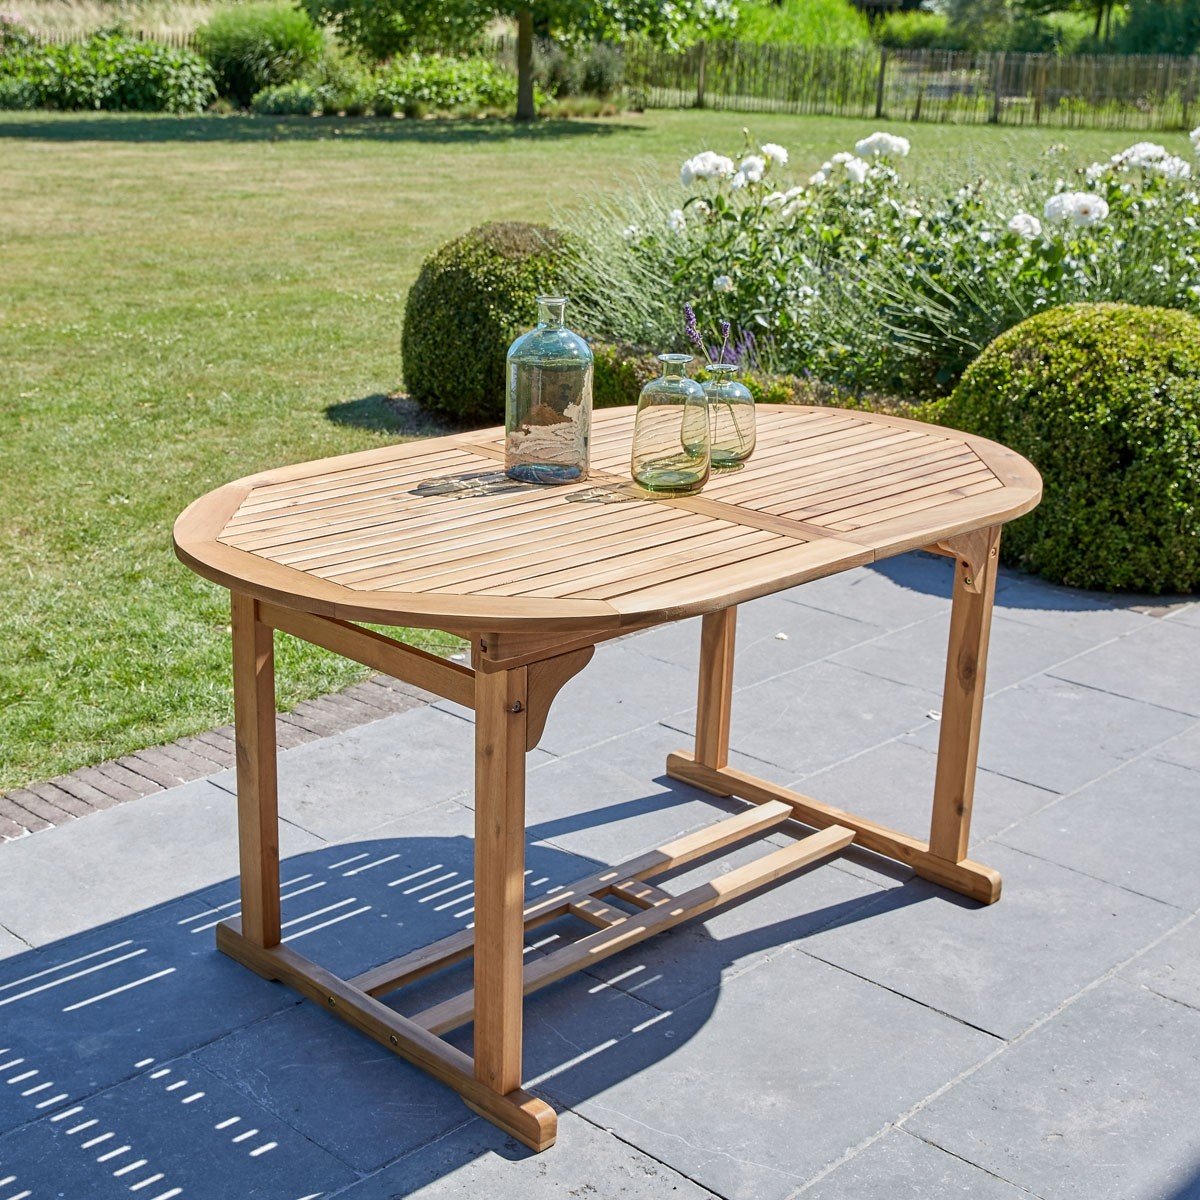 Table en bois d 39 acacia 6 8 places bois dessus bois dessous for Table 8 places